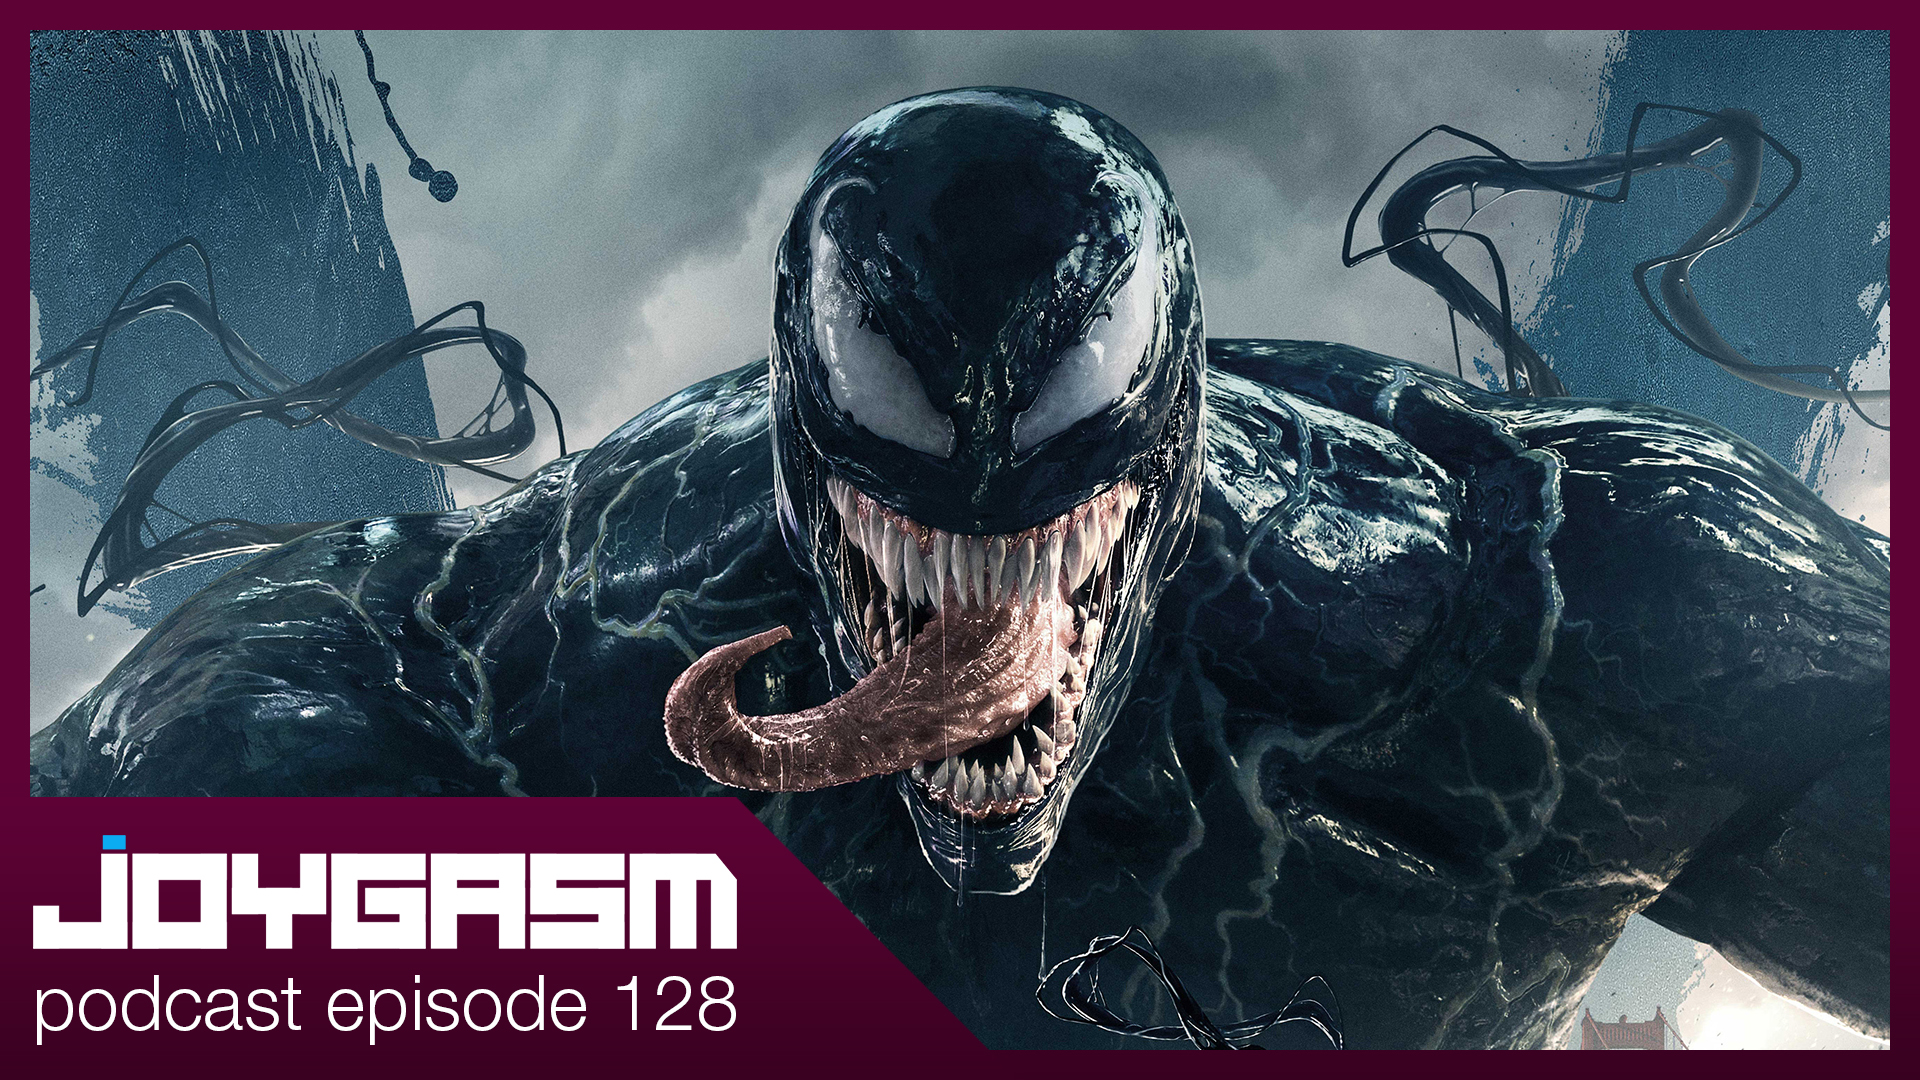 Ep. 128: Venom Movie Review